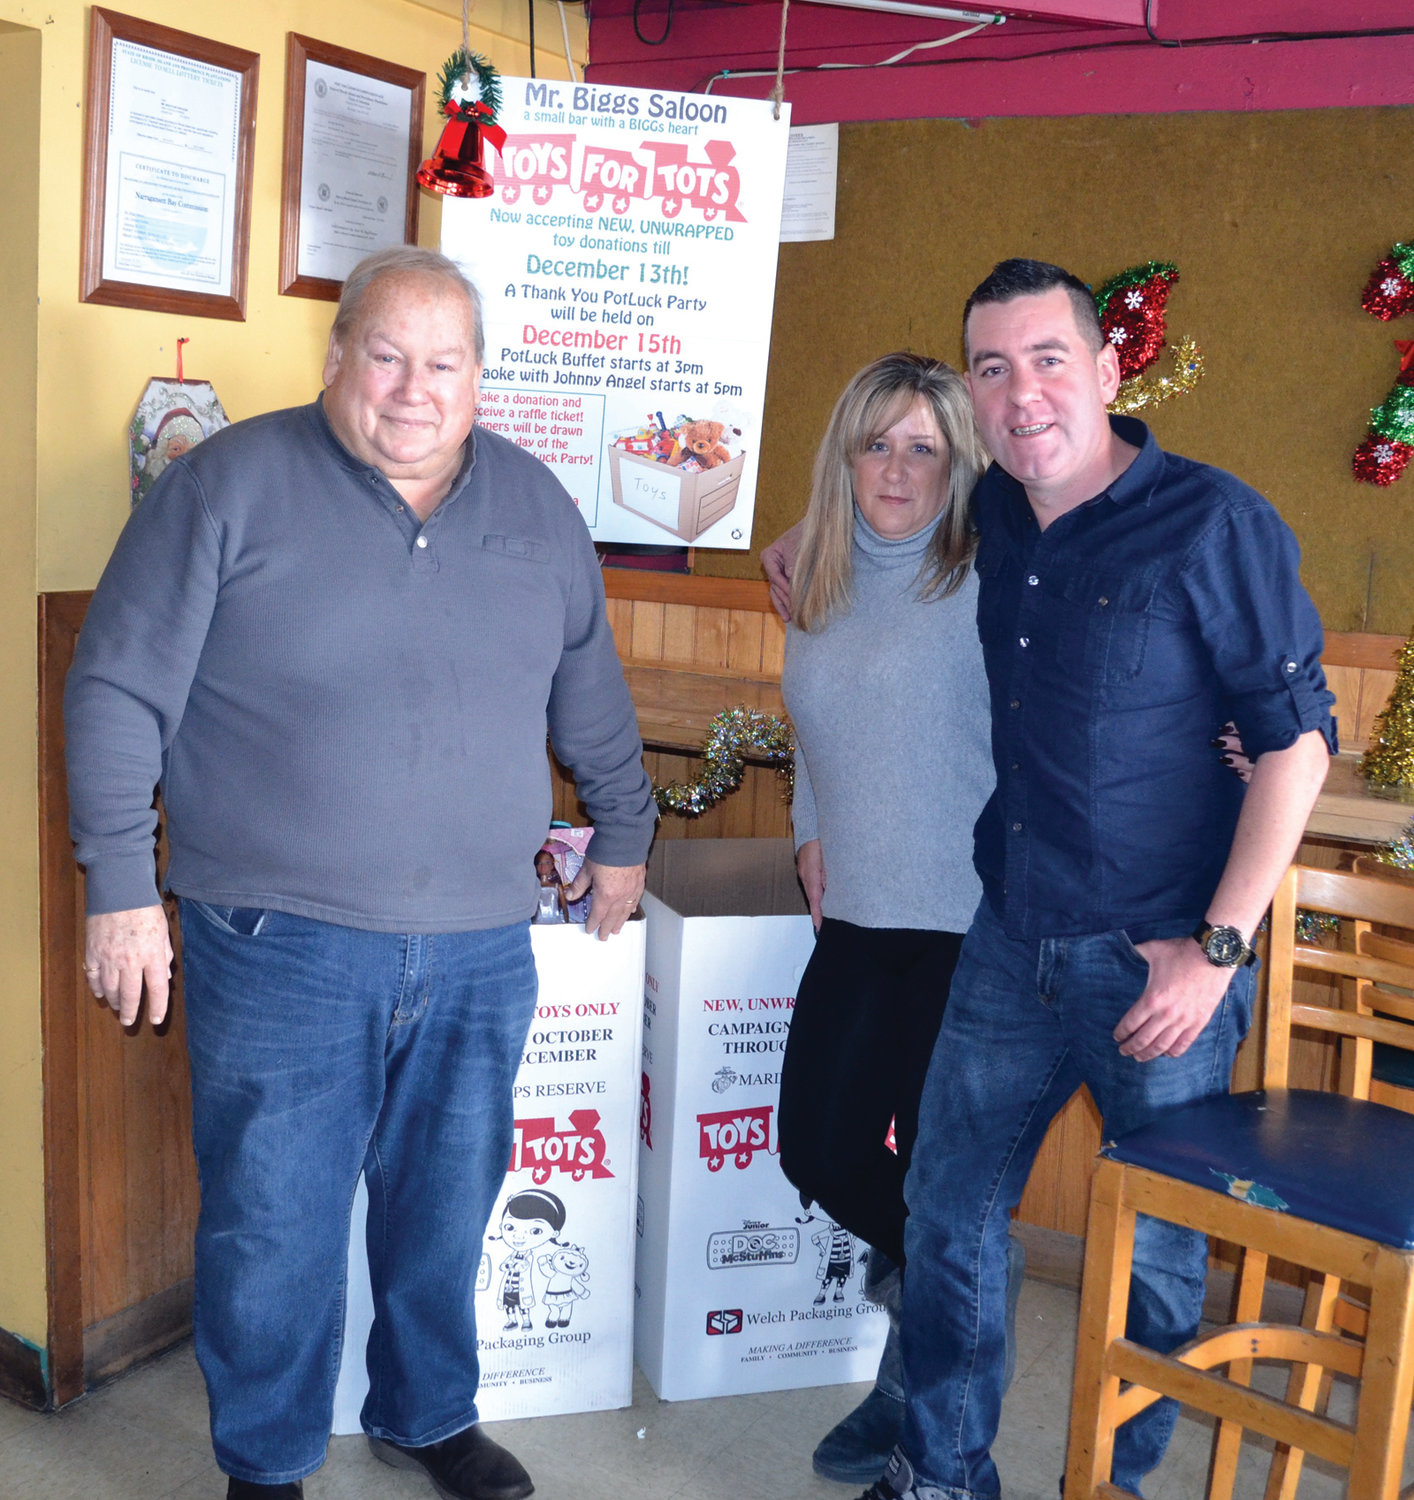 THE DRIVE IS ON: From left to right, Mr. Biggs Saloon owner Dennis Fried and bartenders Kristine Truppi and Eugene Gormley pose next to boxes they hope to fill with donations for Toys for Tots.